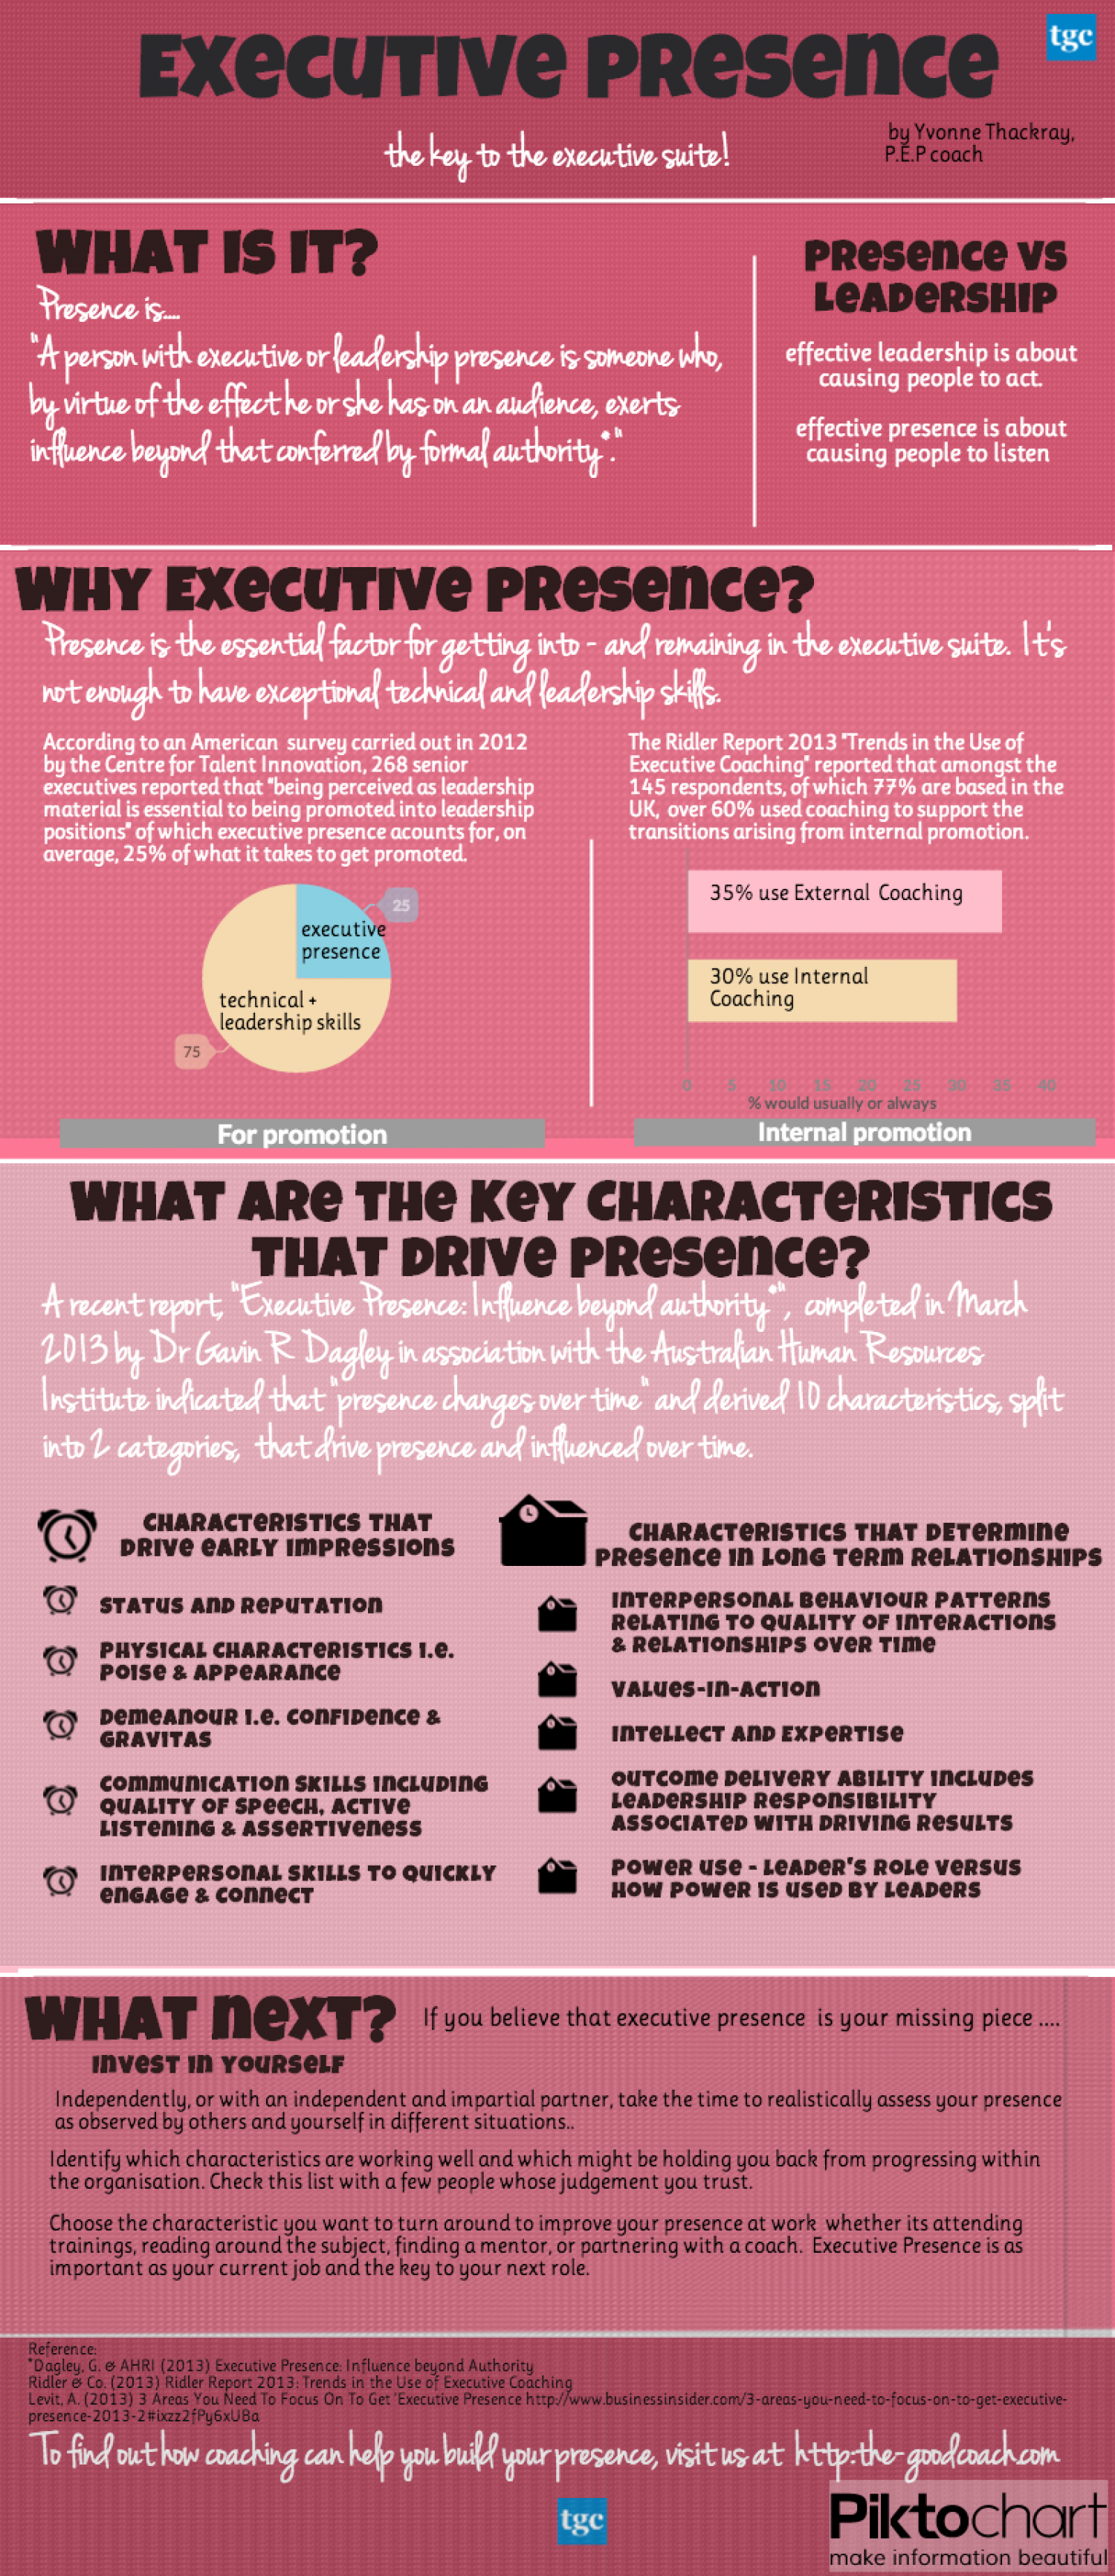 Executive Presence: the key to the suite! Infographic